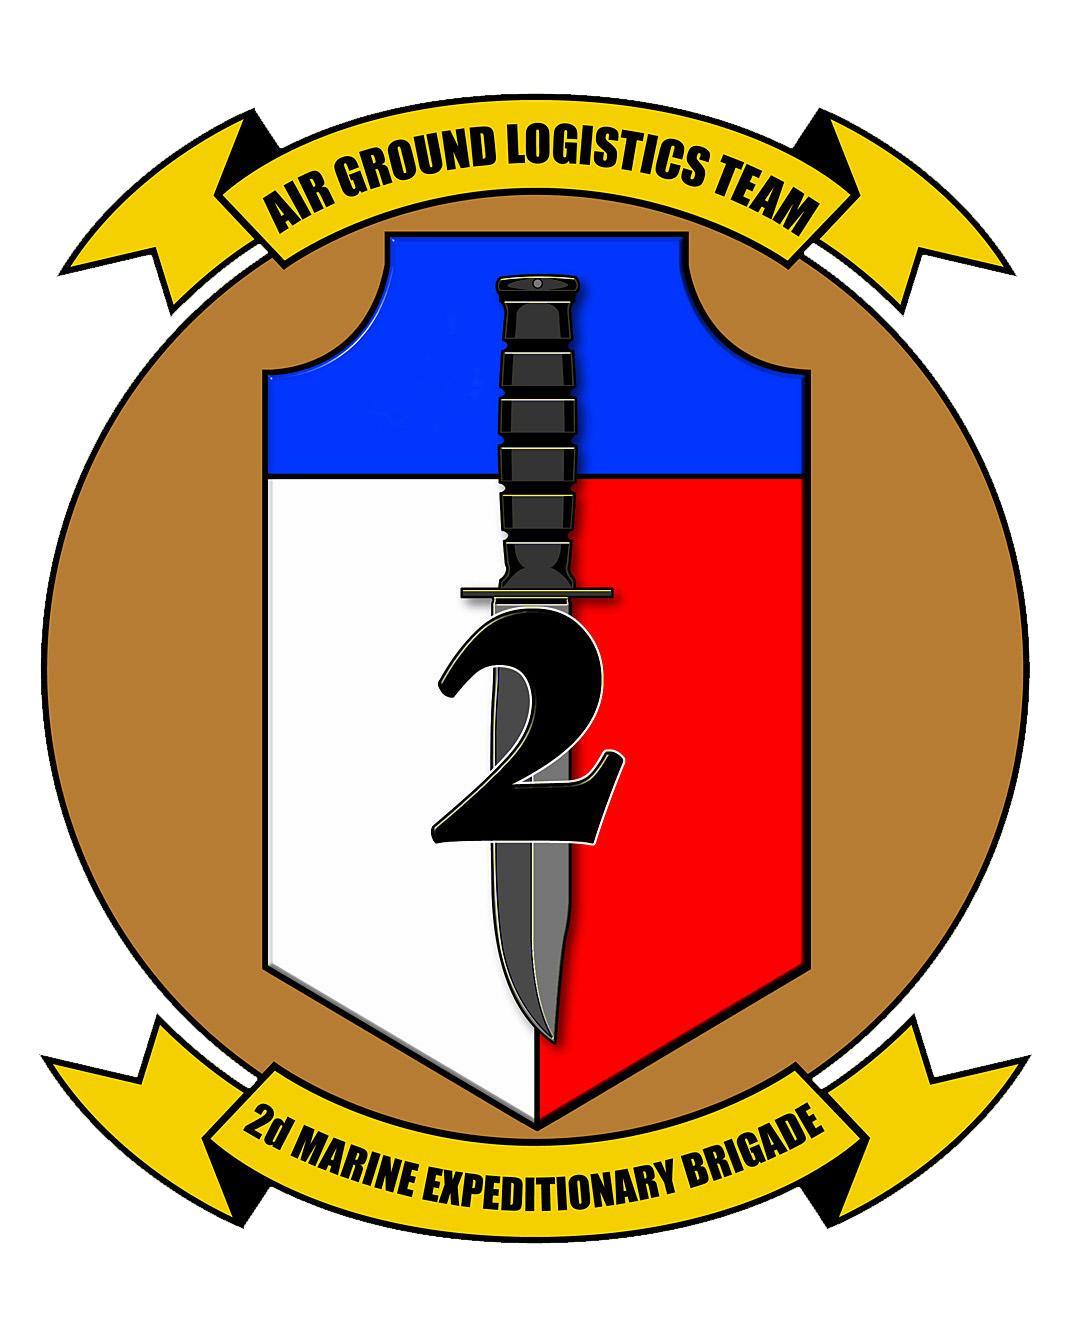 Expeditionary clipart #13